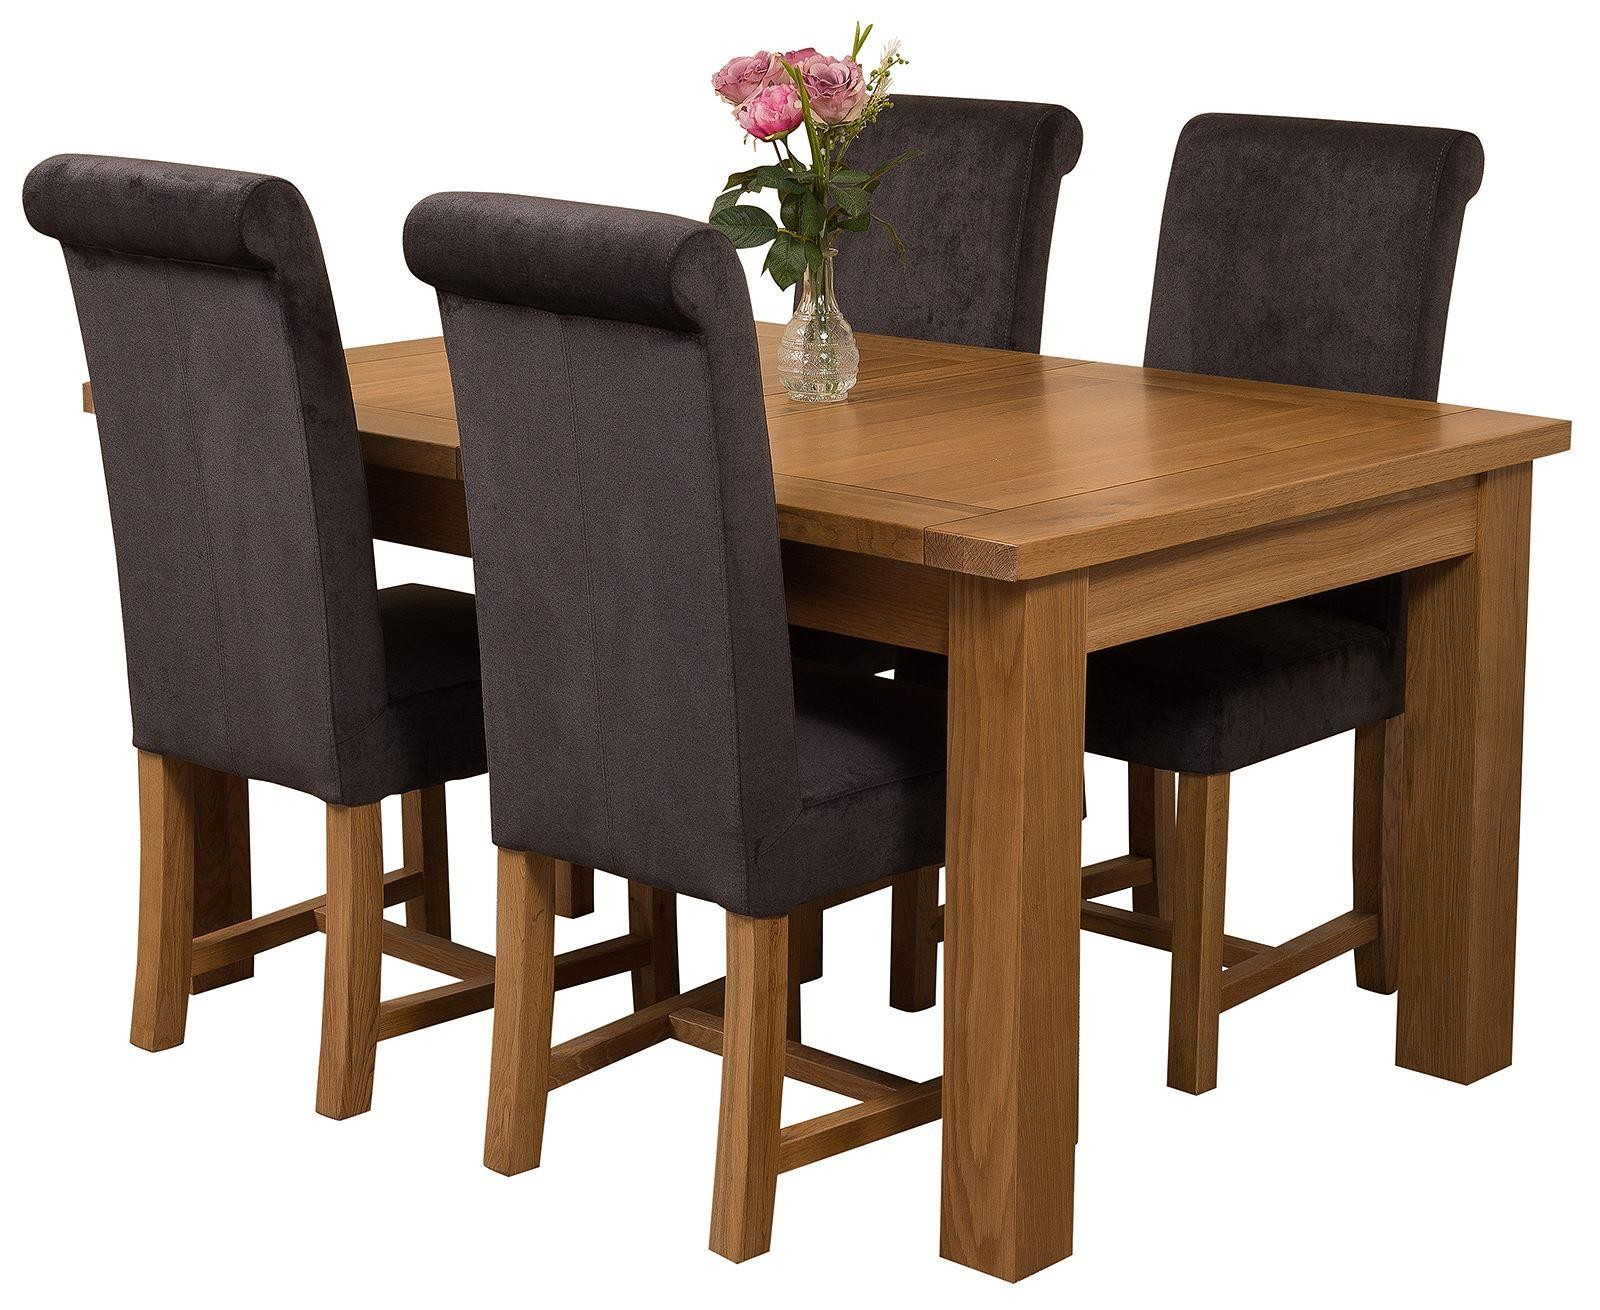 Seattle Solid Oak 150cm-210cm Extending Dining Table with 4 Washington Dining Chairs [Black Fabric]